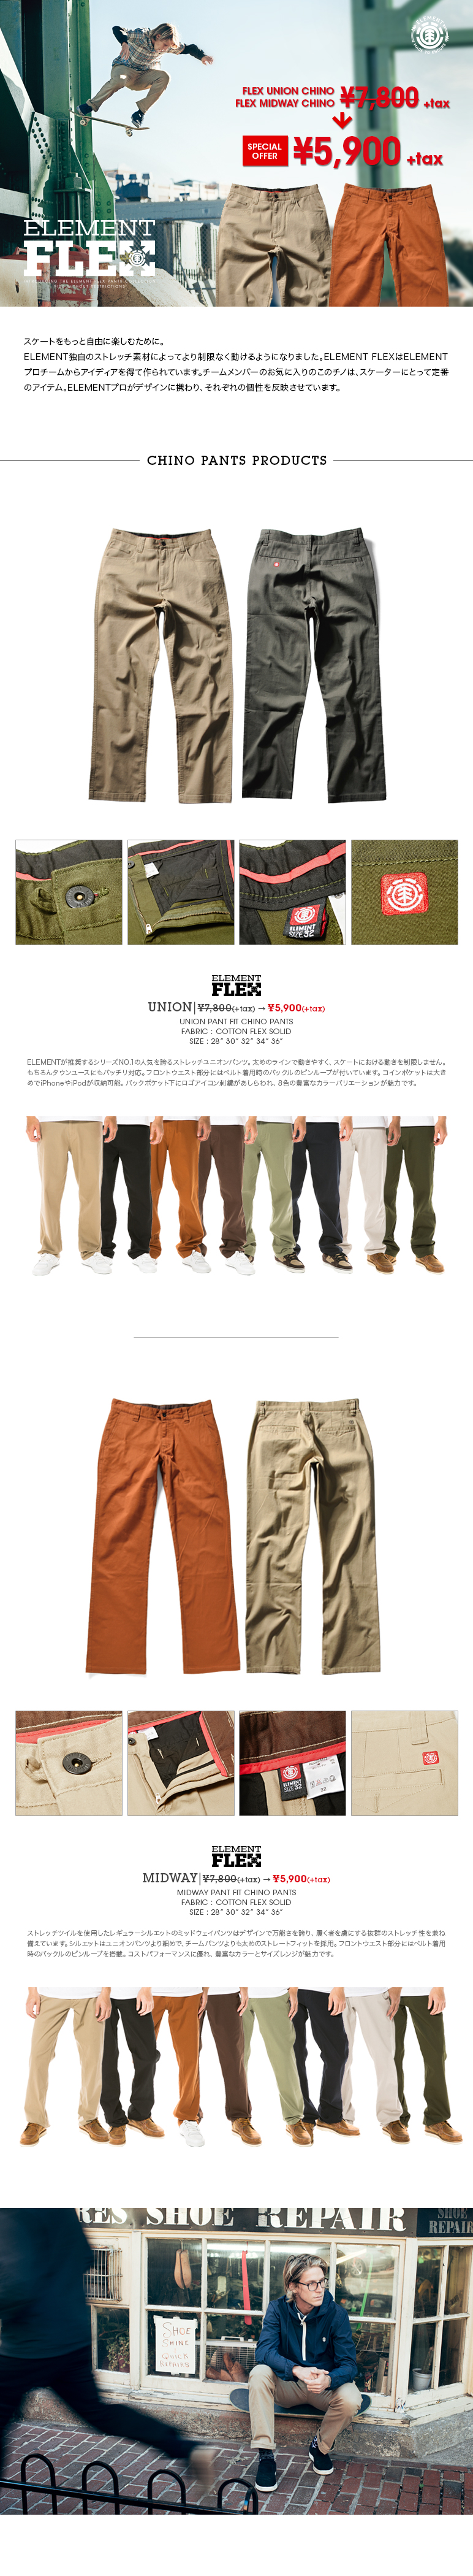 ELEMENT FLEX \5900 CHINO PANTS